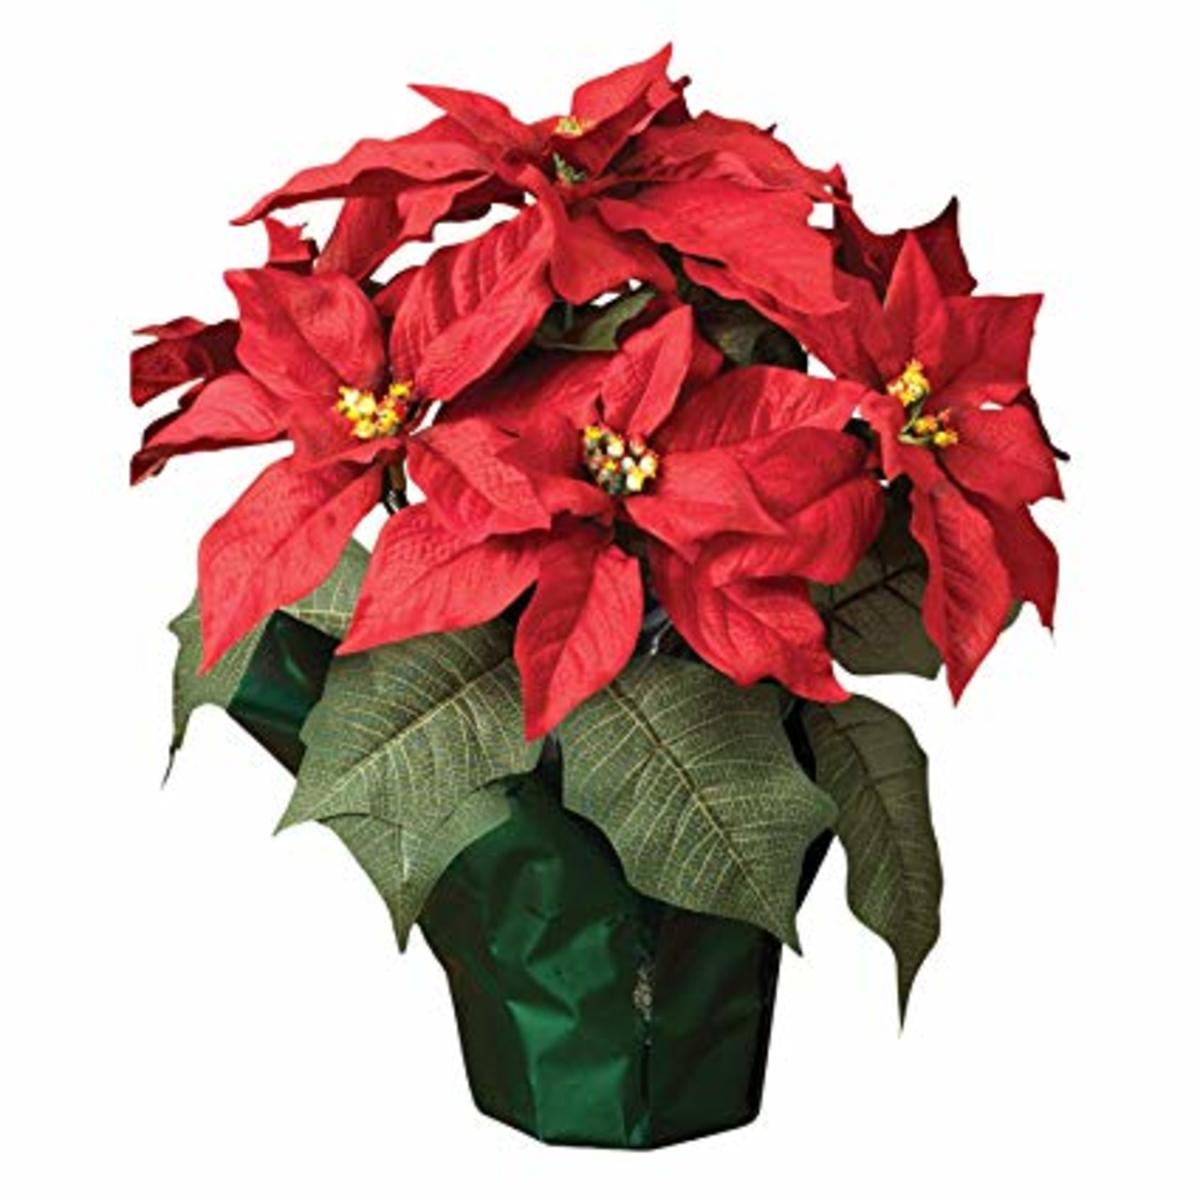 Poinsettias are popular Christmas decorations.